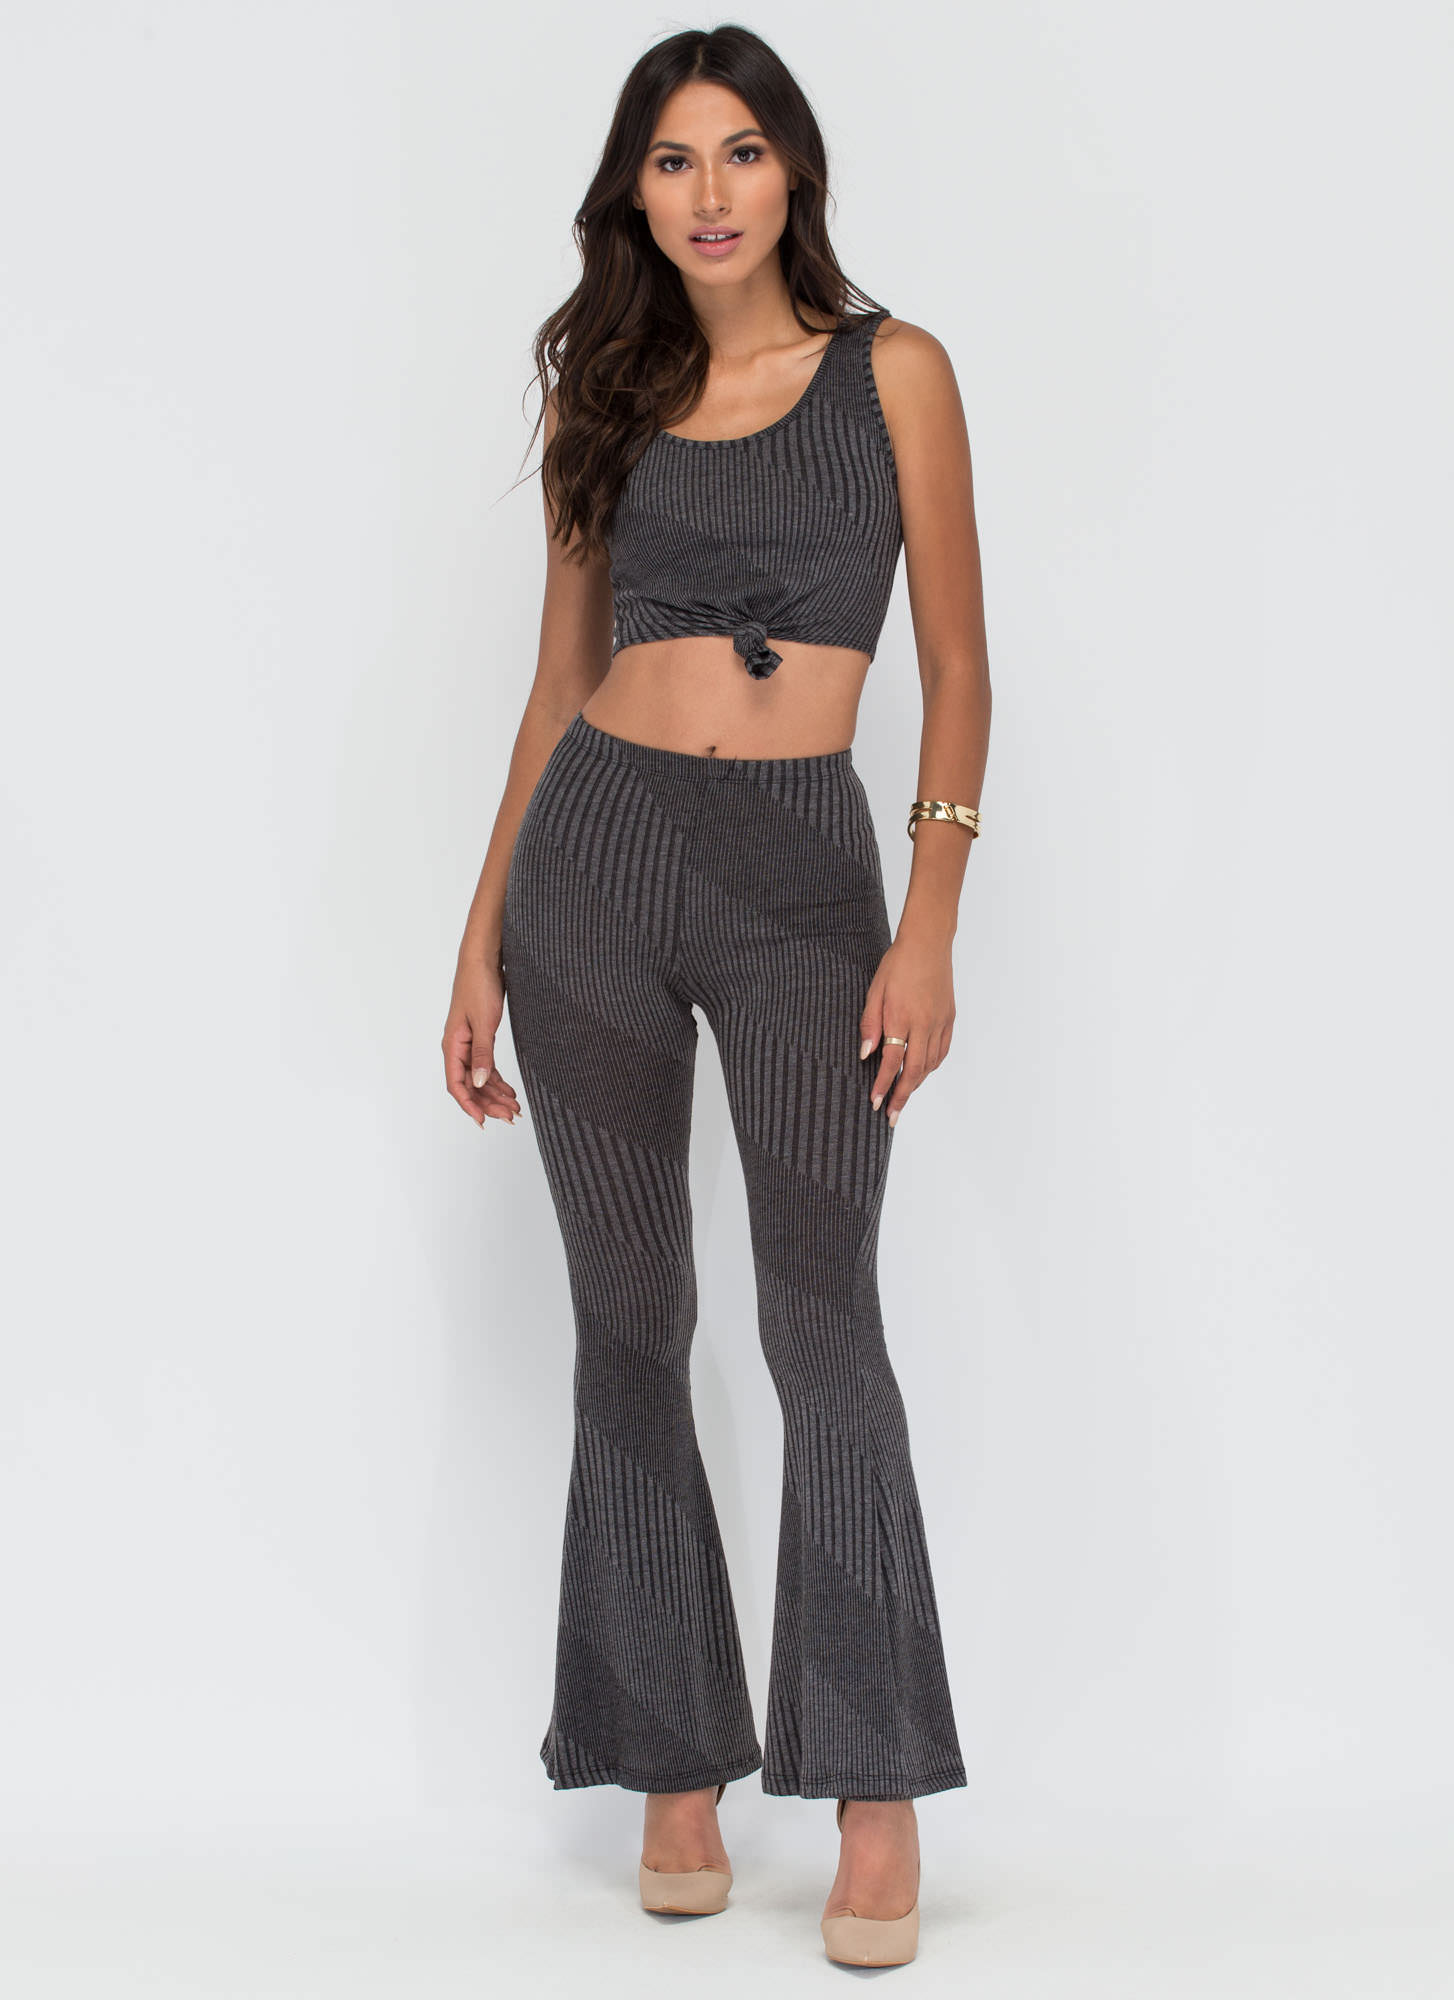 Chic Catch Ribbed Top 'N Pants Set CHARCOAL